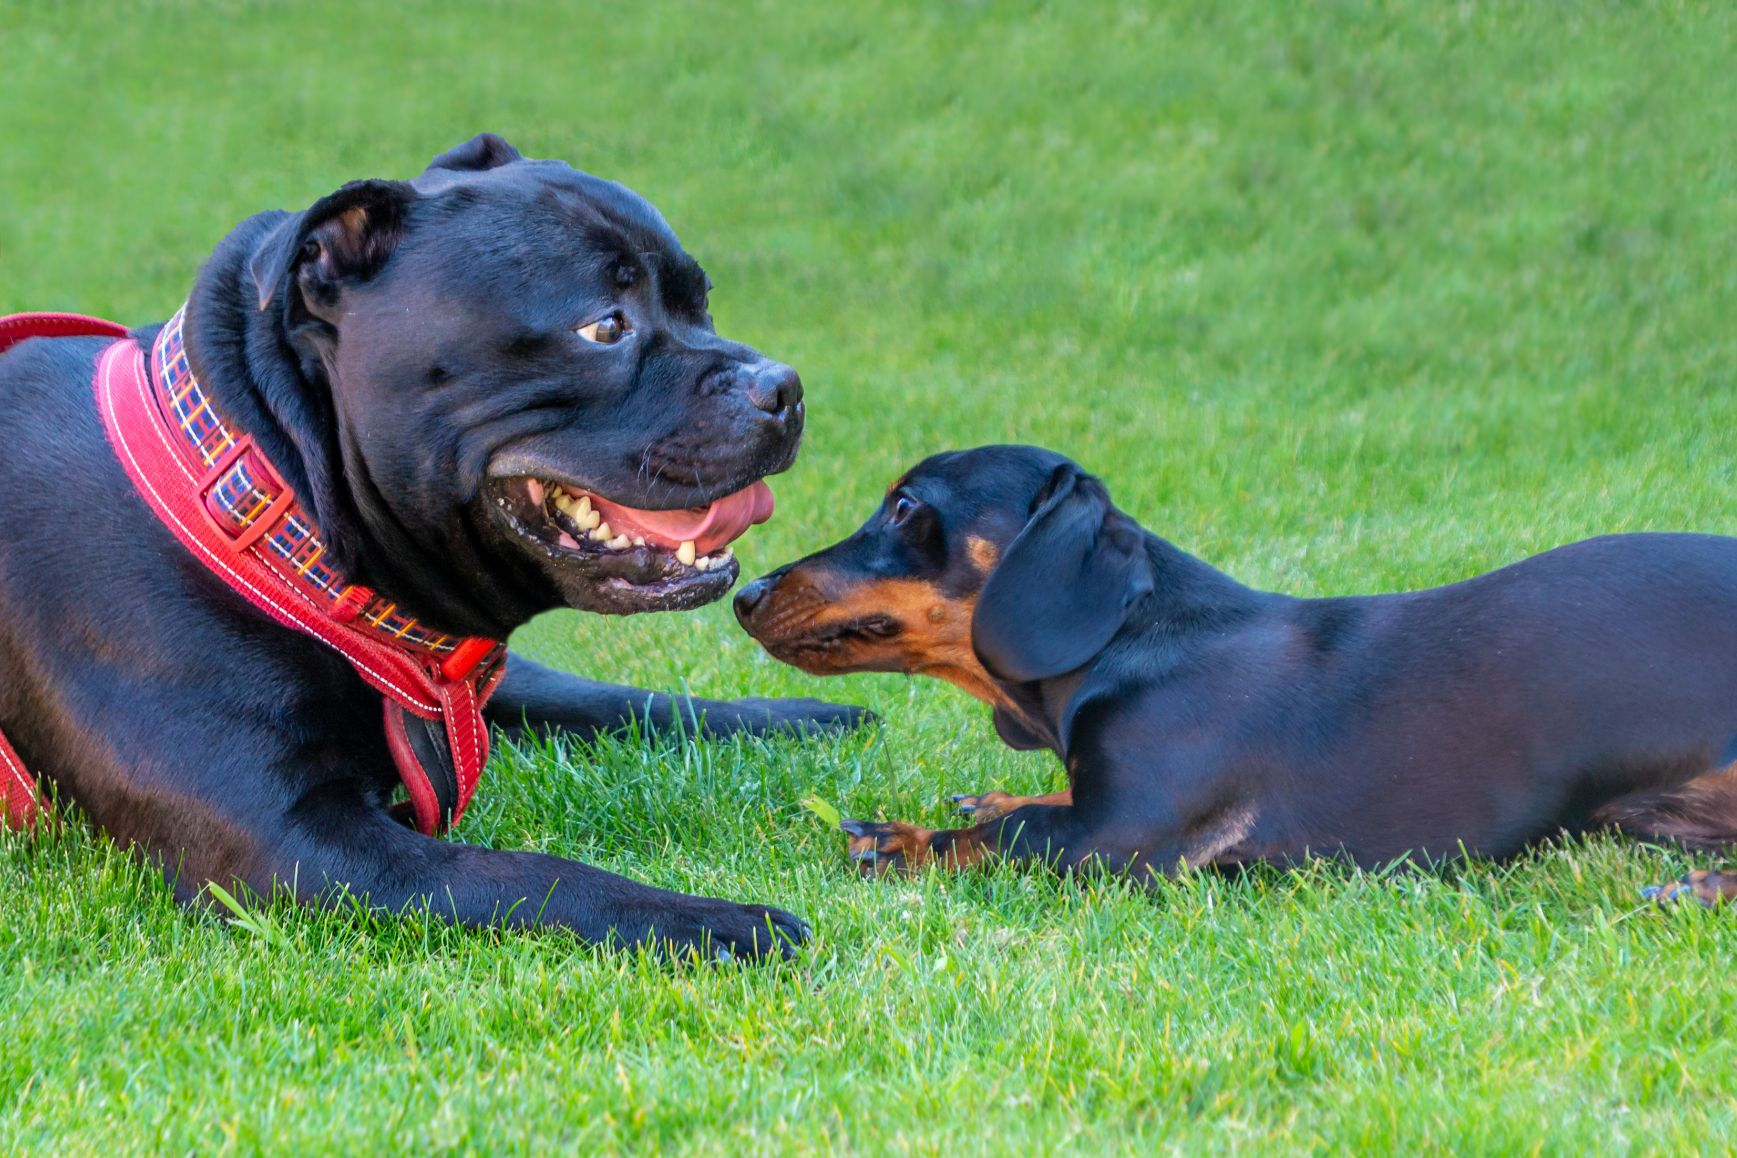 2 dogs playing together